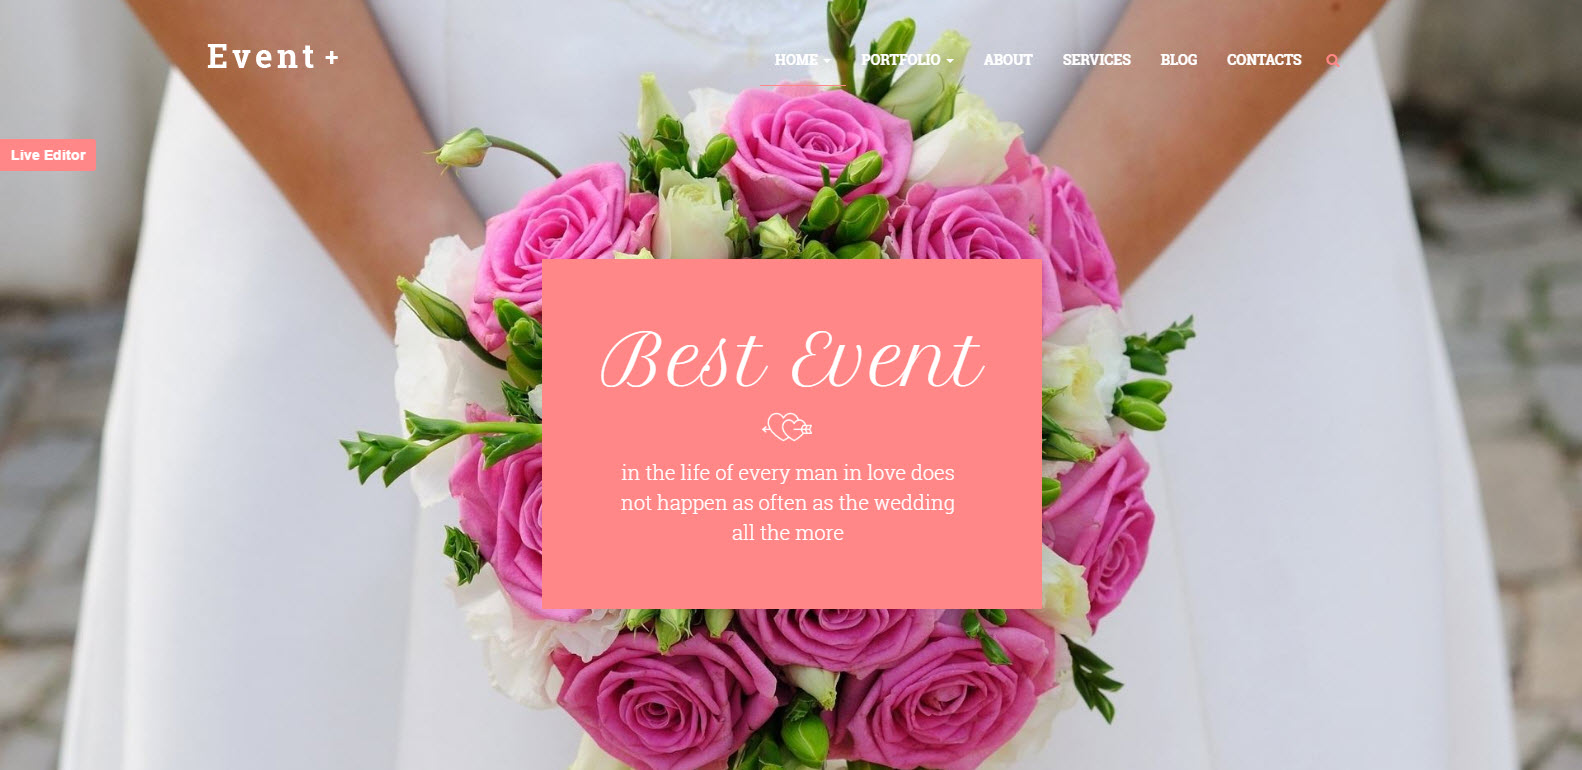 wedding theme - event wordpress theme - medical wordpress theme - health wordpress theme - finance wordpress theme